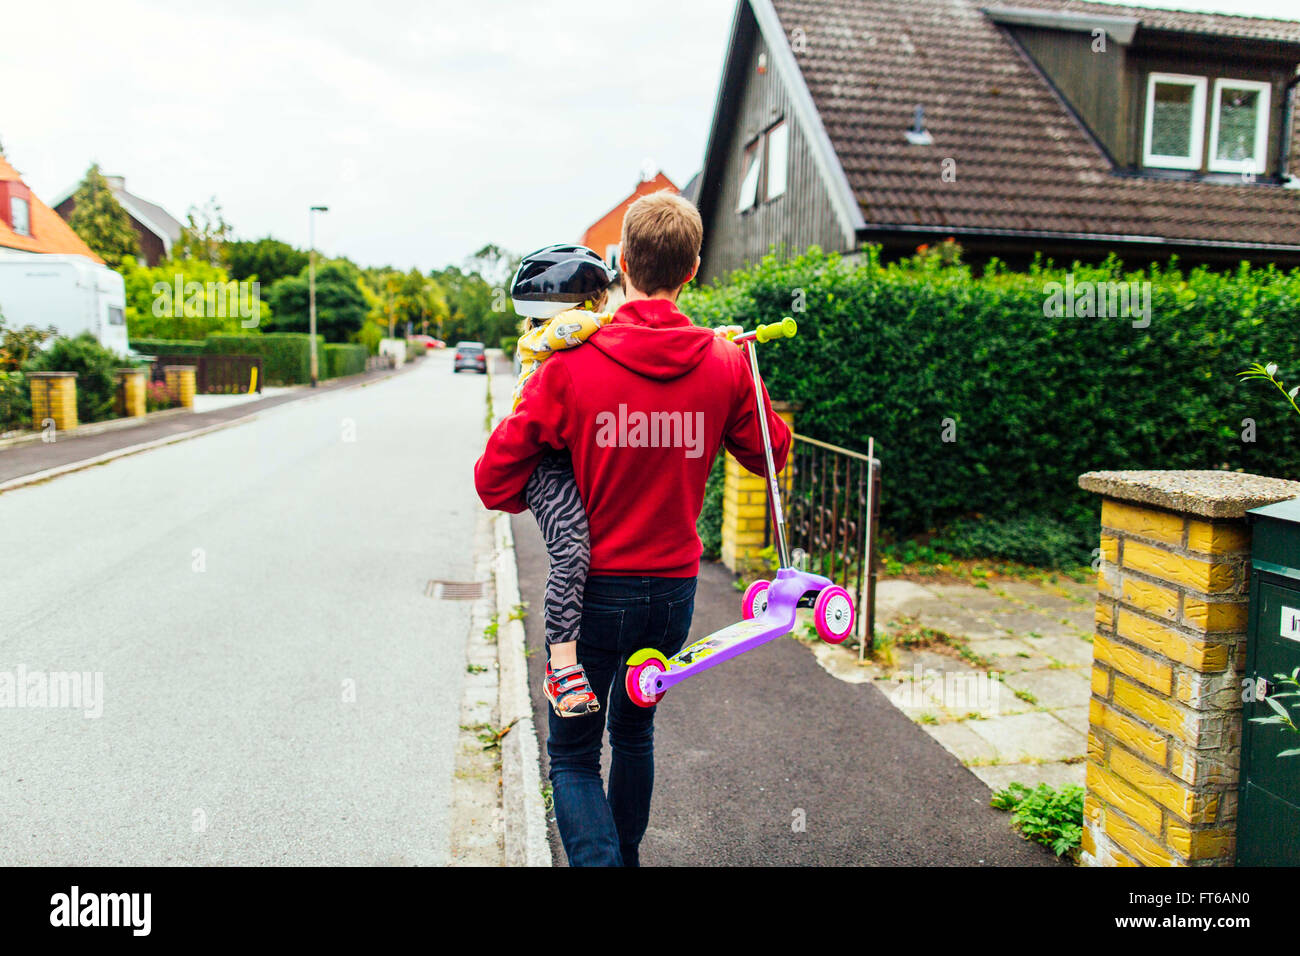 Rear view of man carrying daughter and push scooter on sidewalk - Stock Image